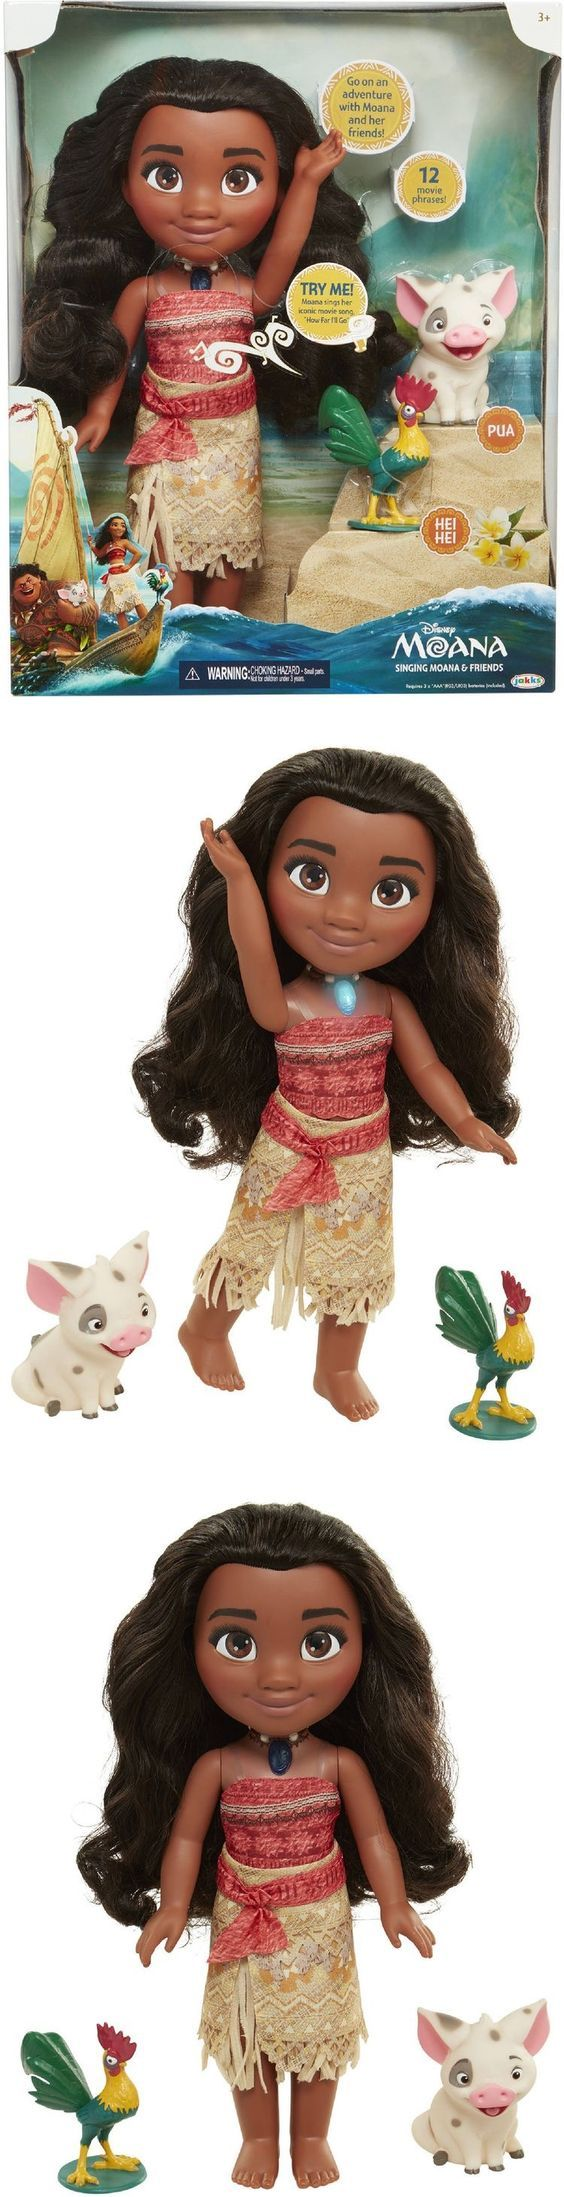 Christmas 2017 gift for our beautiful granddaughter. Disney Singing Moana and Friends. Disney princess doll set includes Moana, her pet pig Pua and her rooster friend Heihei. When you  push Moana's shell necklace it lights up, and she says actual movie phrases and sings her song How Far I'll Go.    My baby enjoys holding her while watching the Moana DVD I got her and her brother for Christmas this year. (+ 2yr protection plan for $2.00)